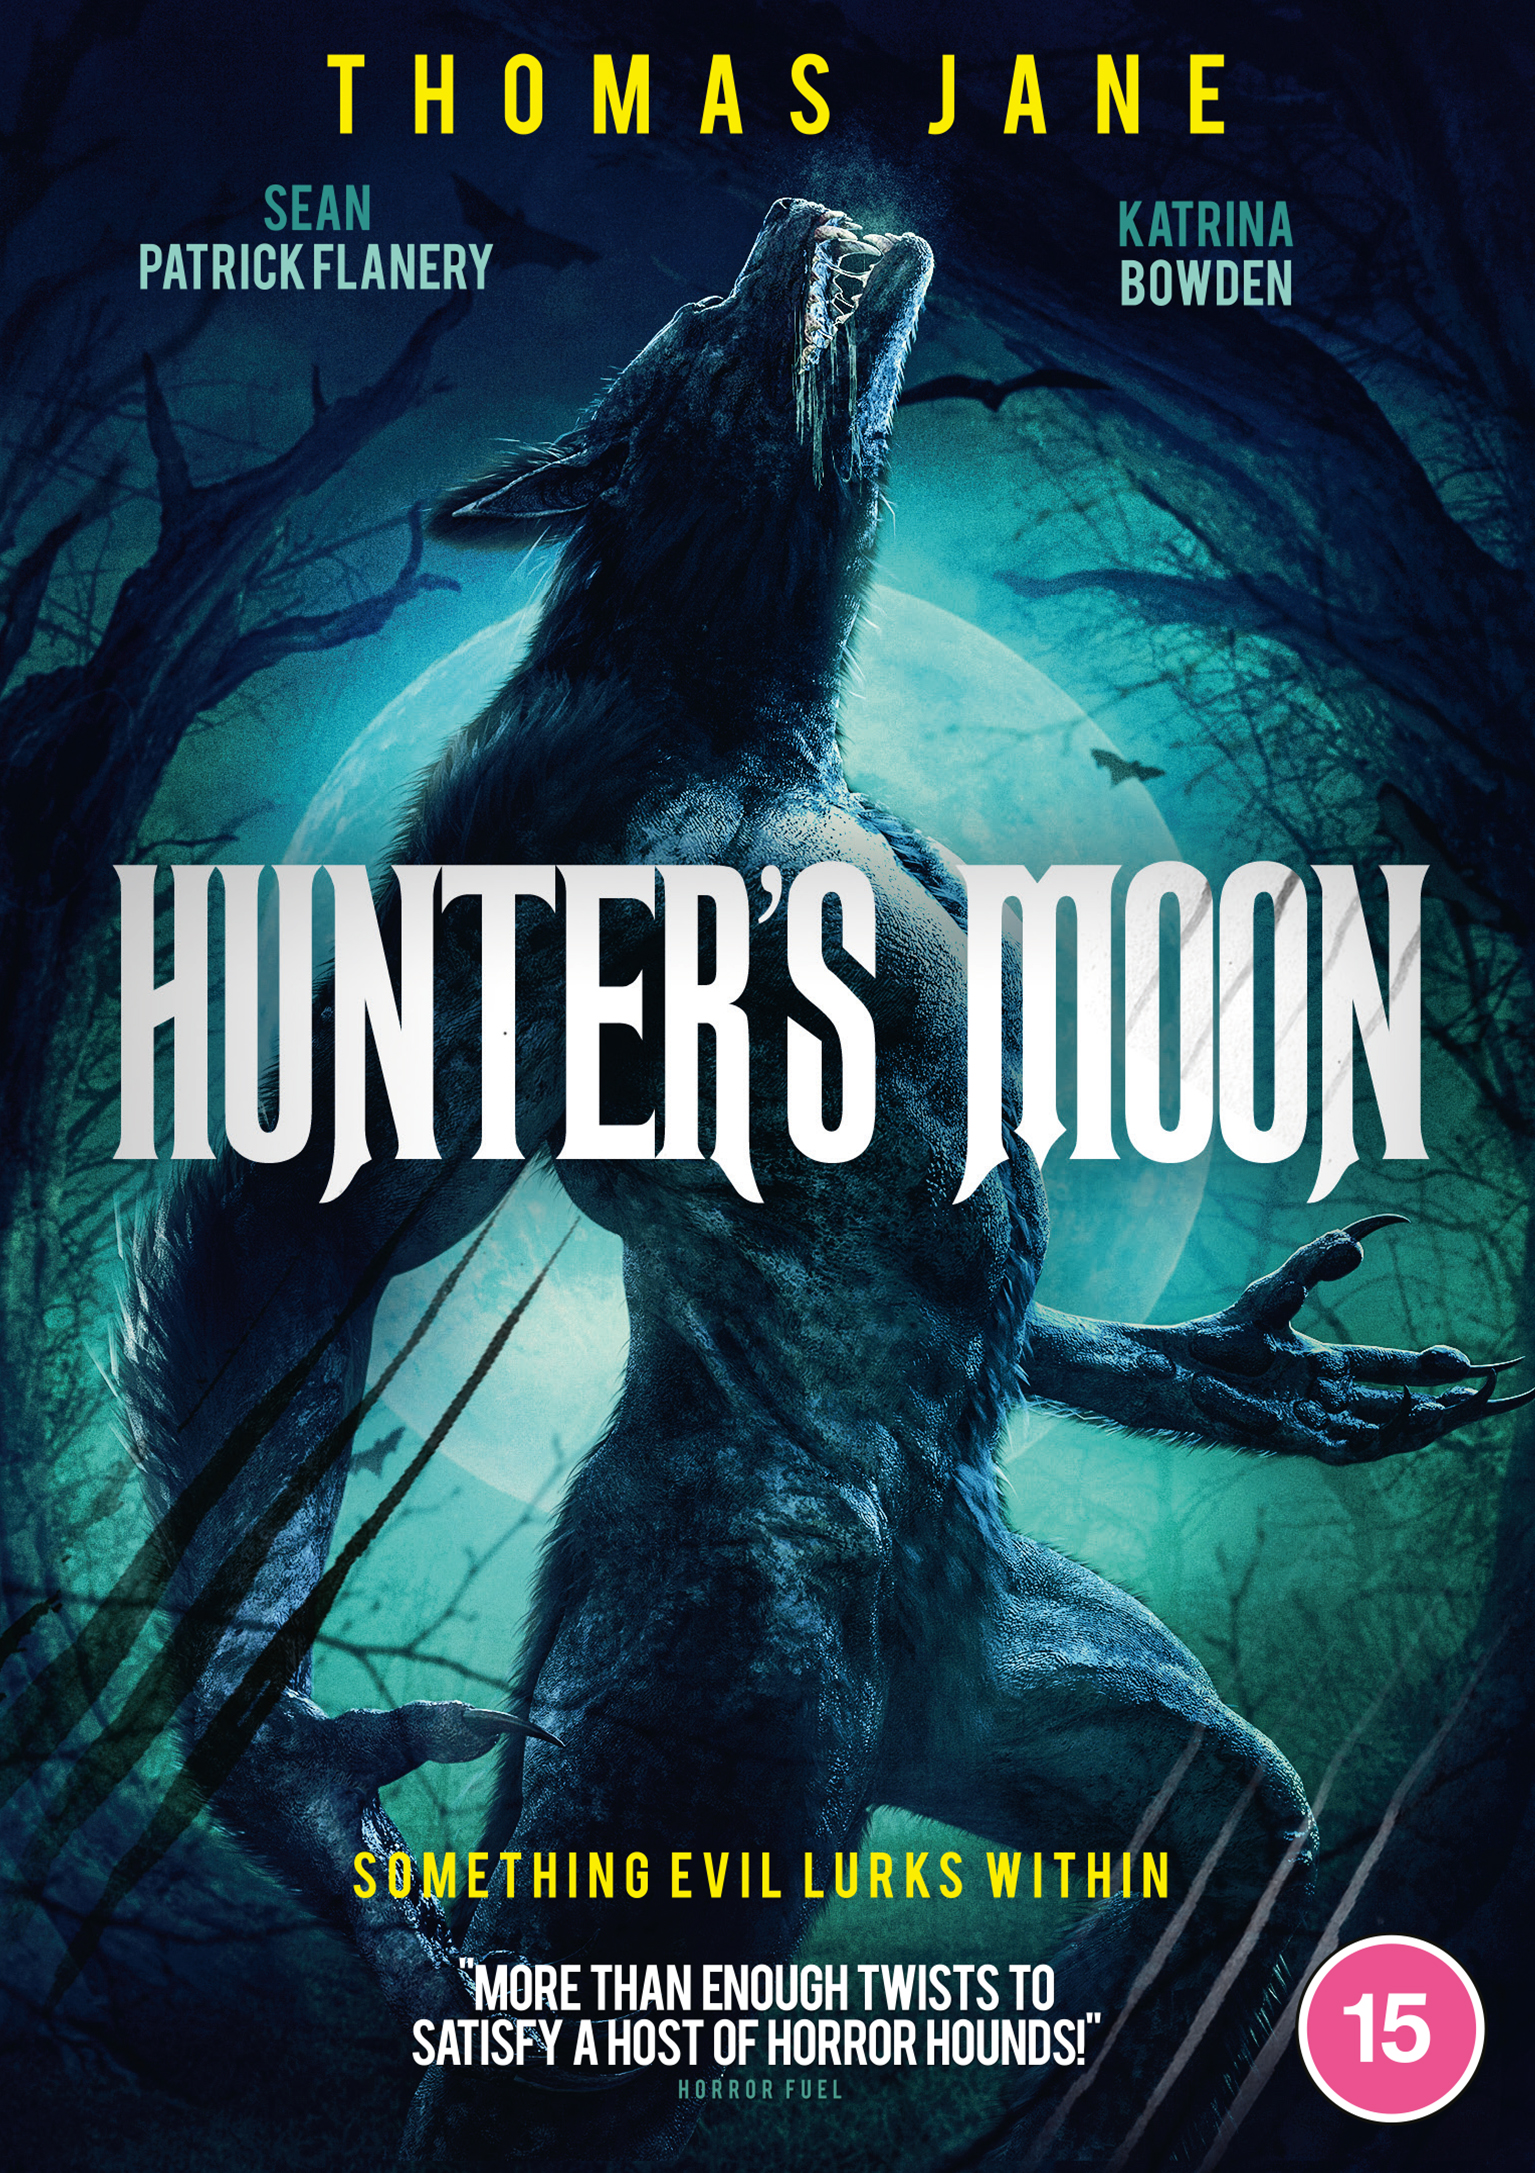 Home Invasion Horror HUNTER'S MOON Arriving on DVD & Digital from Dazzler Media (UK / 24 August)